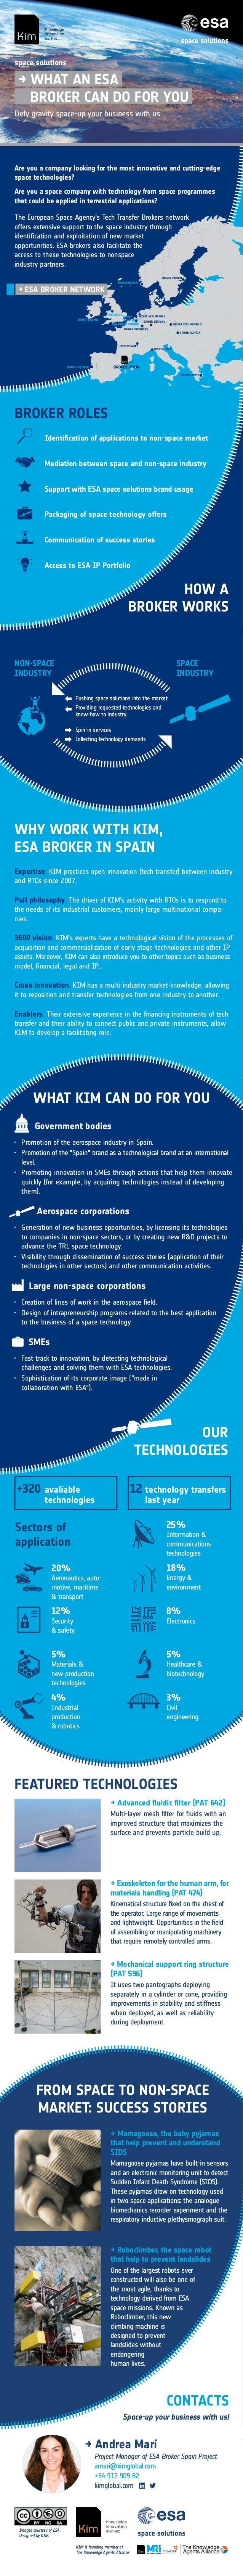 CONTACTS Space-up your business with us! Government bodies •	 Promotion of the aerospace industry in Spain. •	 Promotion o...